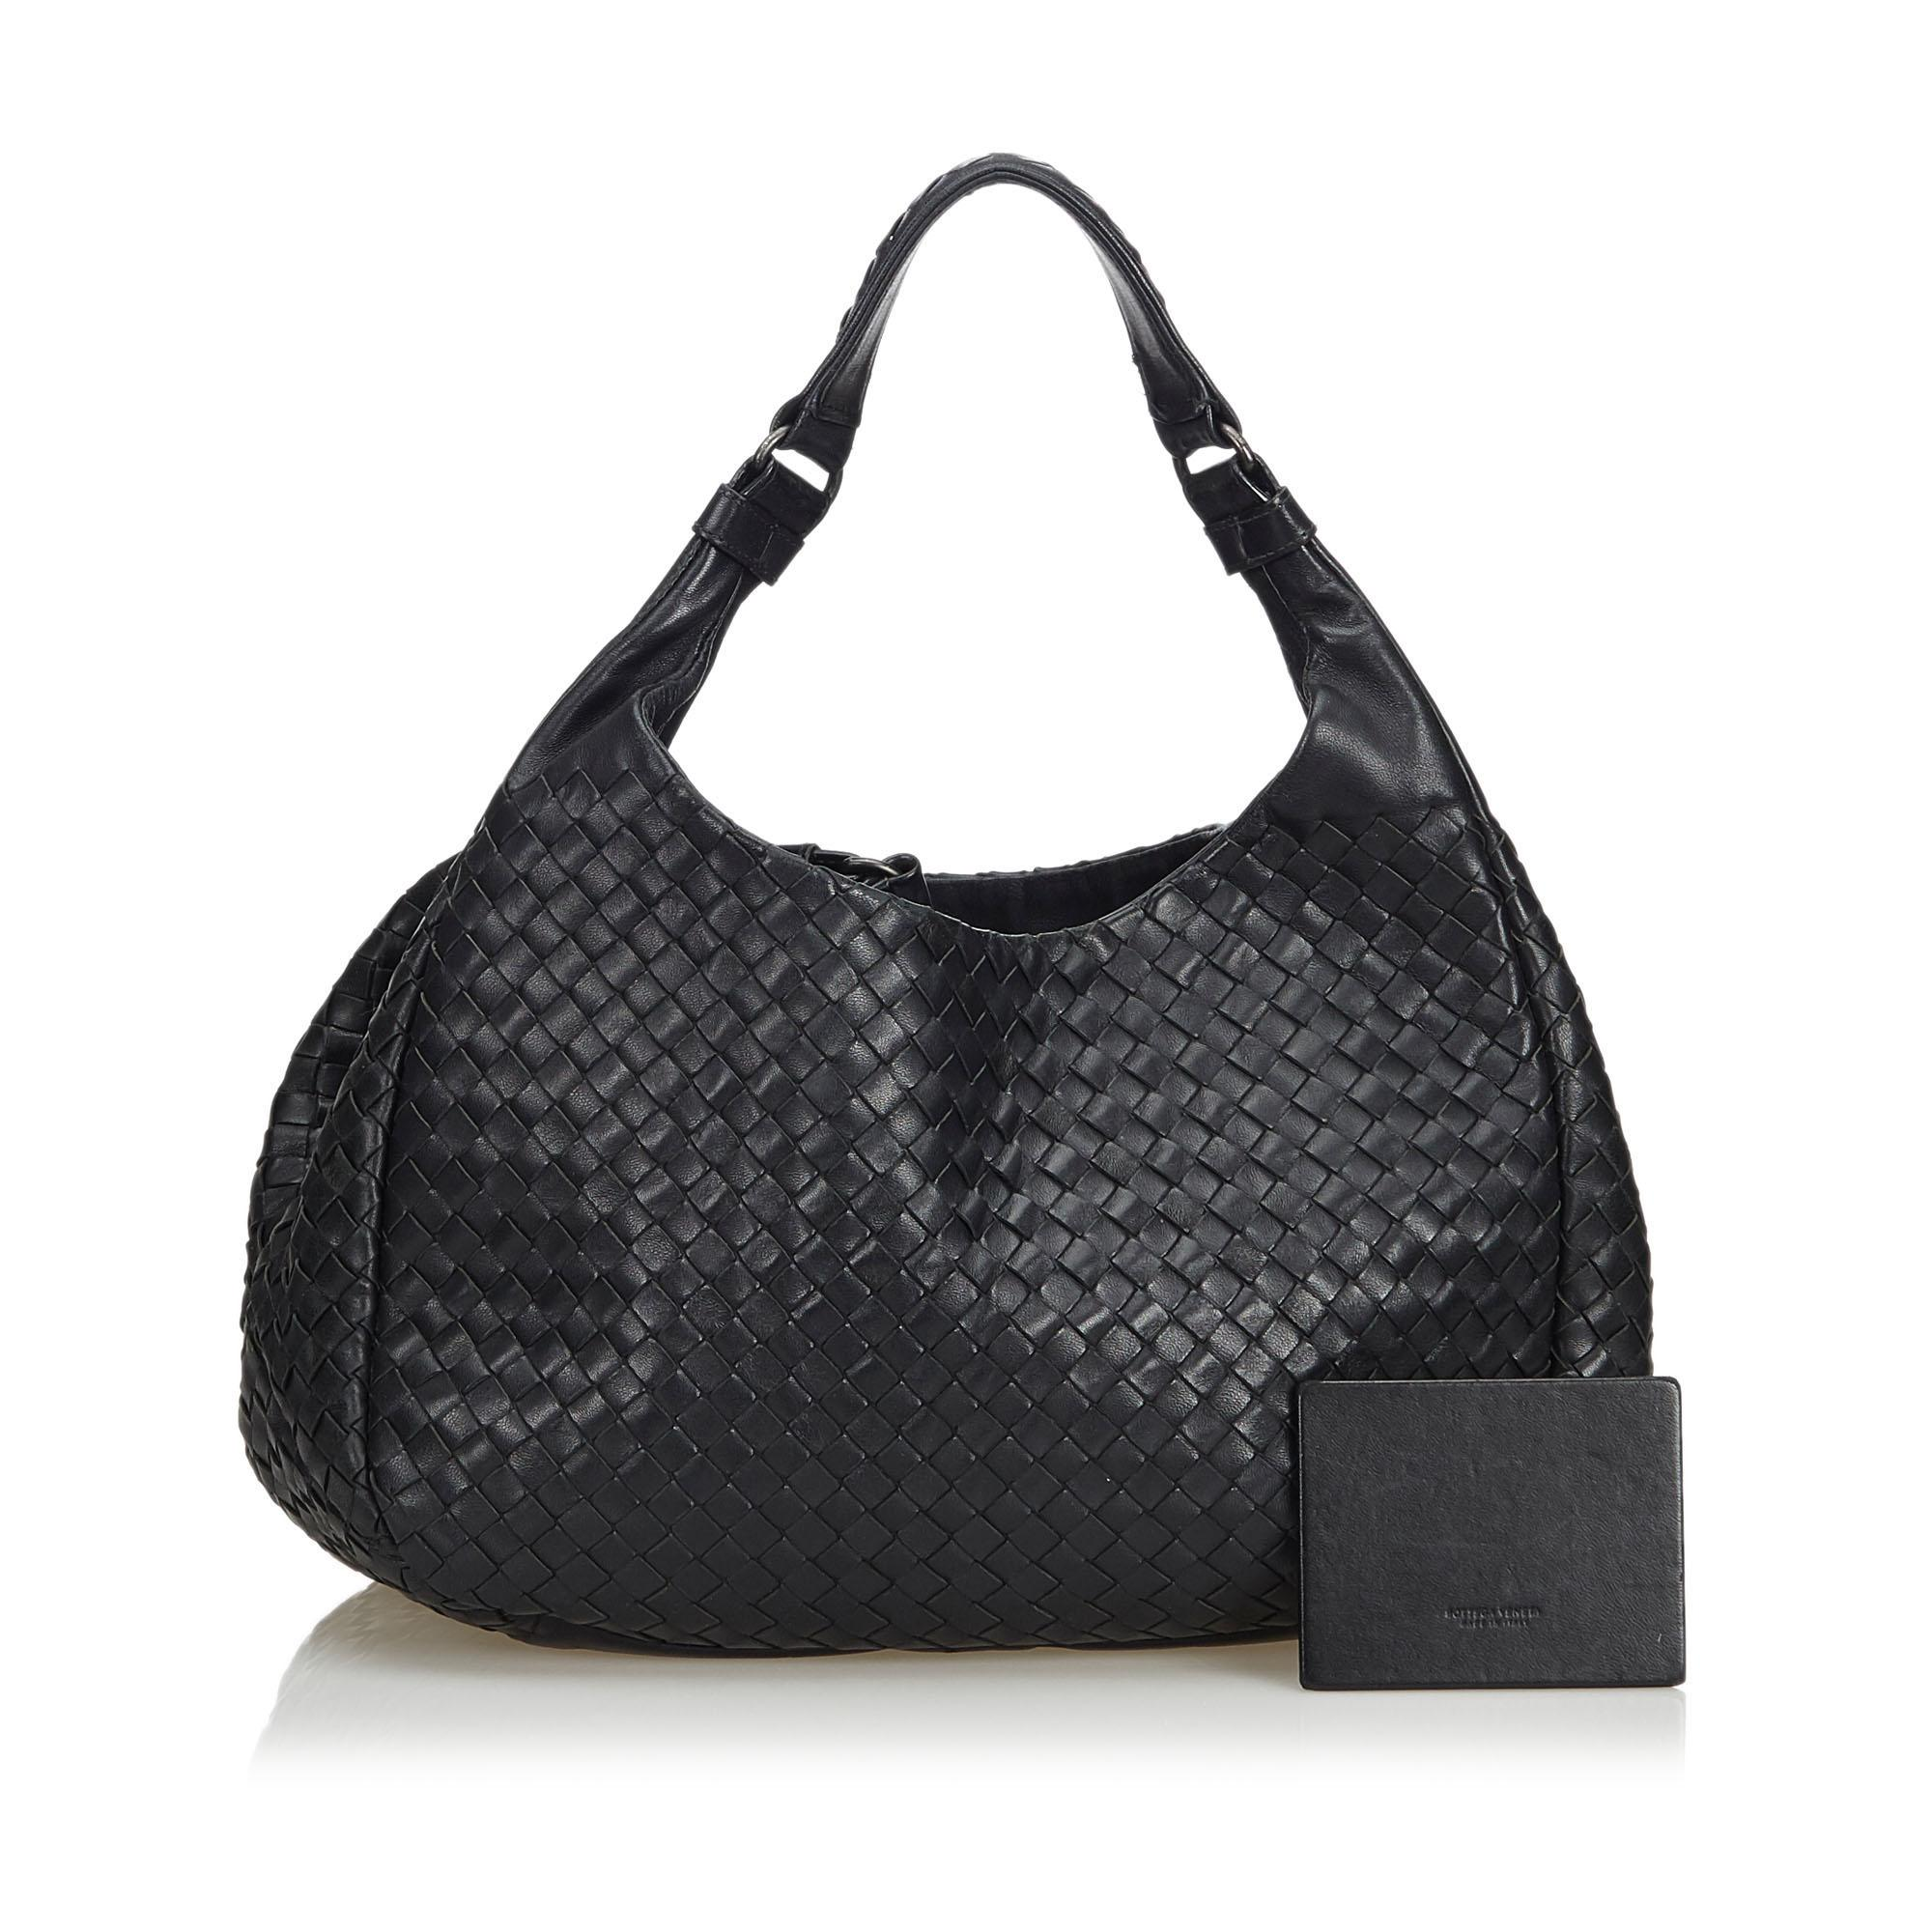 42669048f7a6 Bottega Veneta Black Intrecciato Campana Hobo Bag at 1stdibs